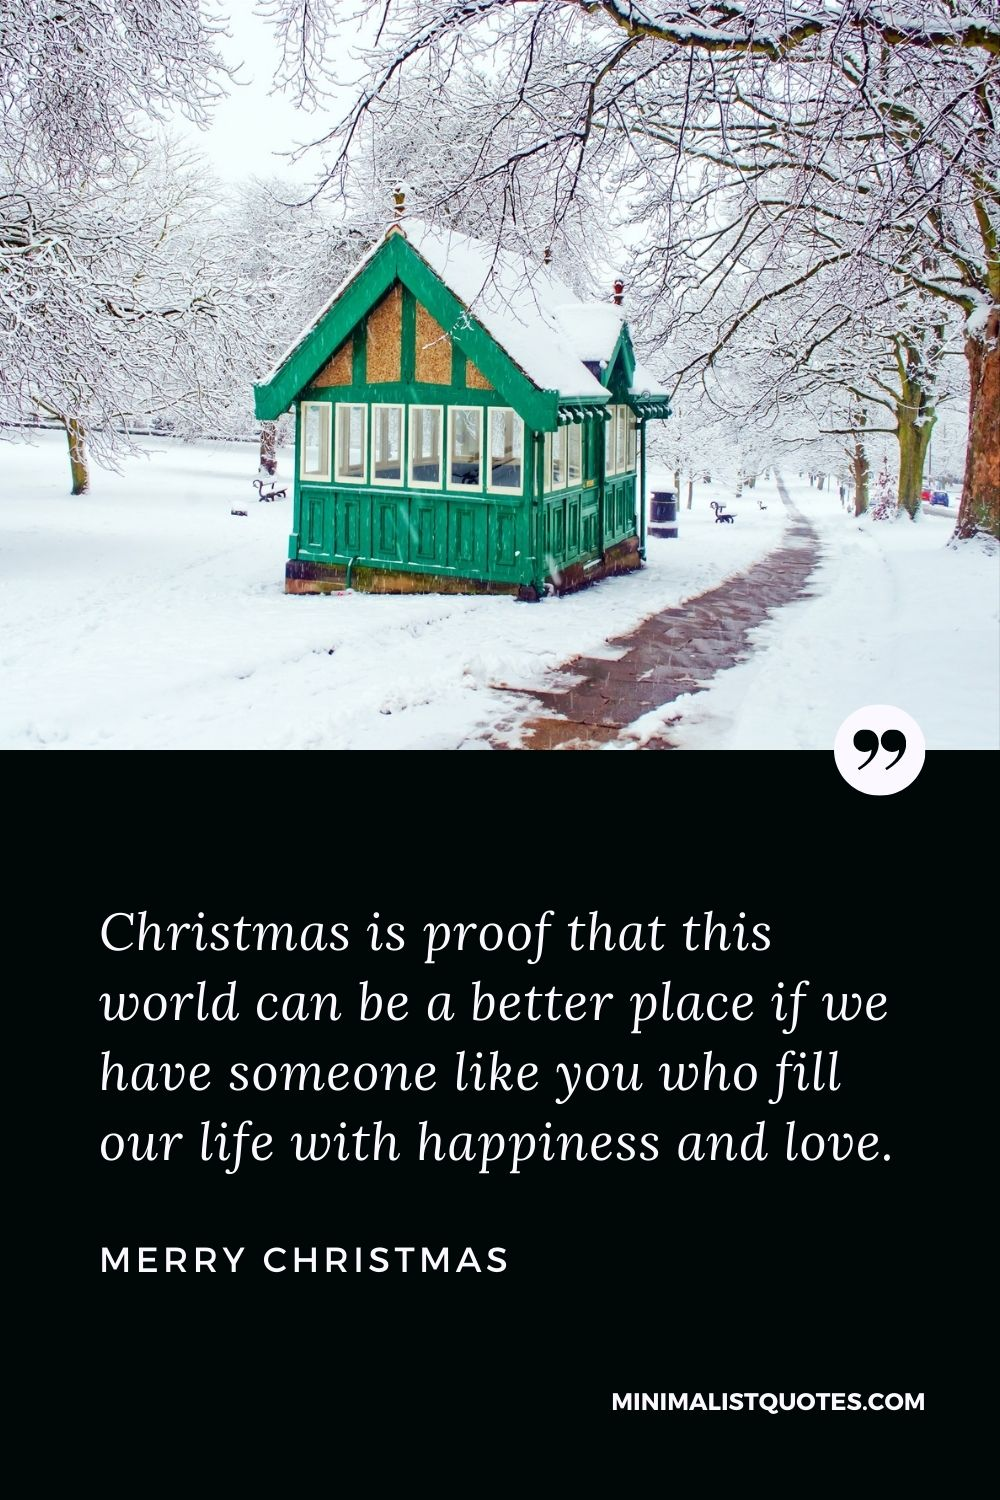 Merry Christmas Wish - Christmas is proof that this world can be a better place if we have someone like you who fill our life with happiness and love.